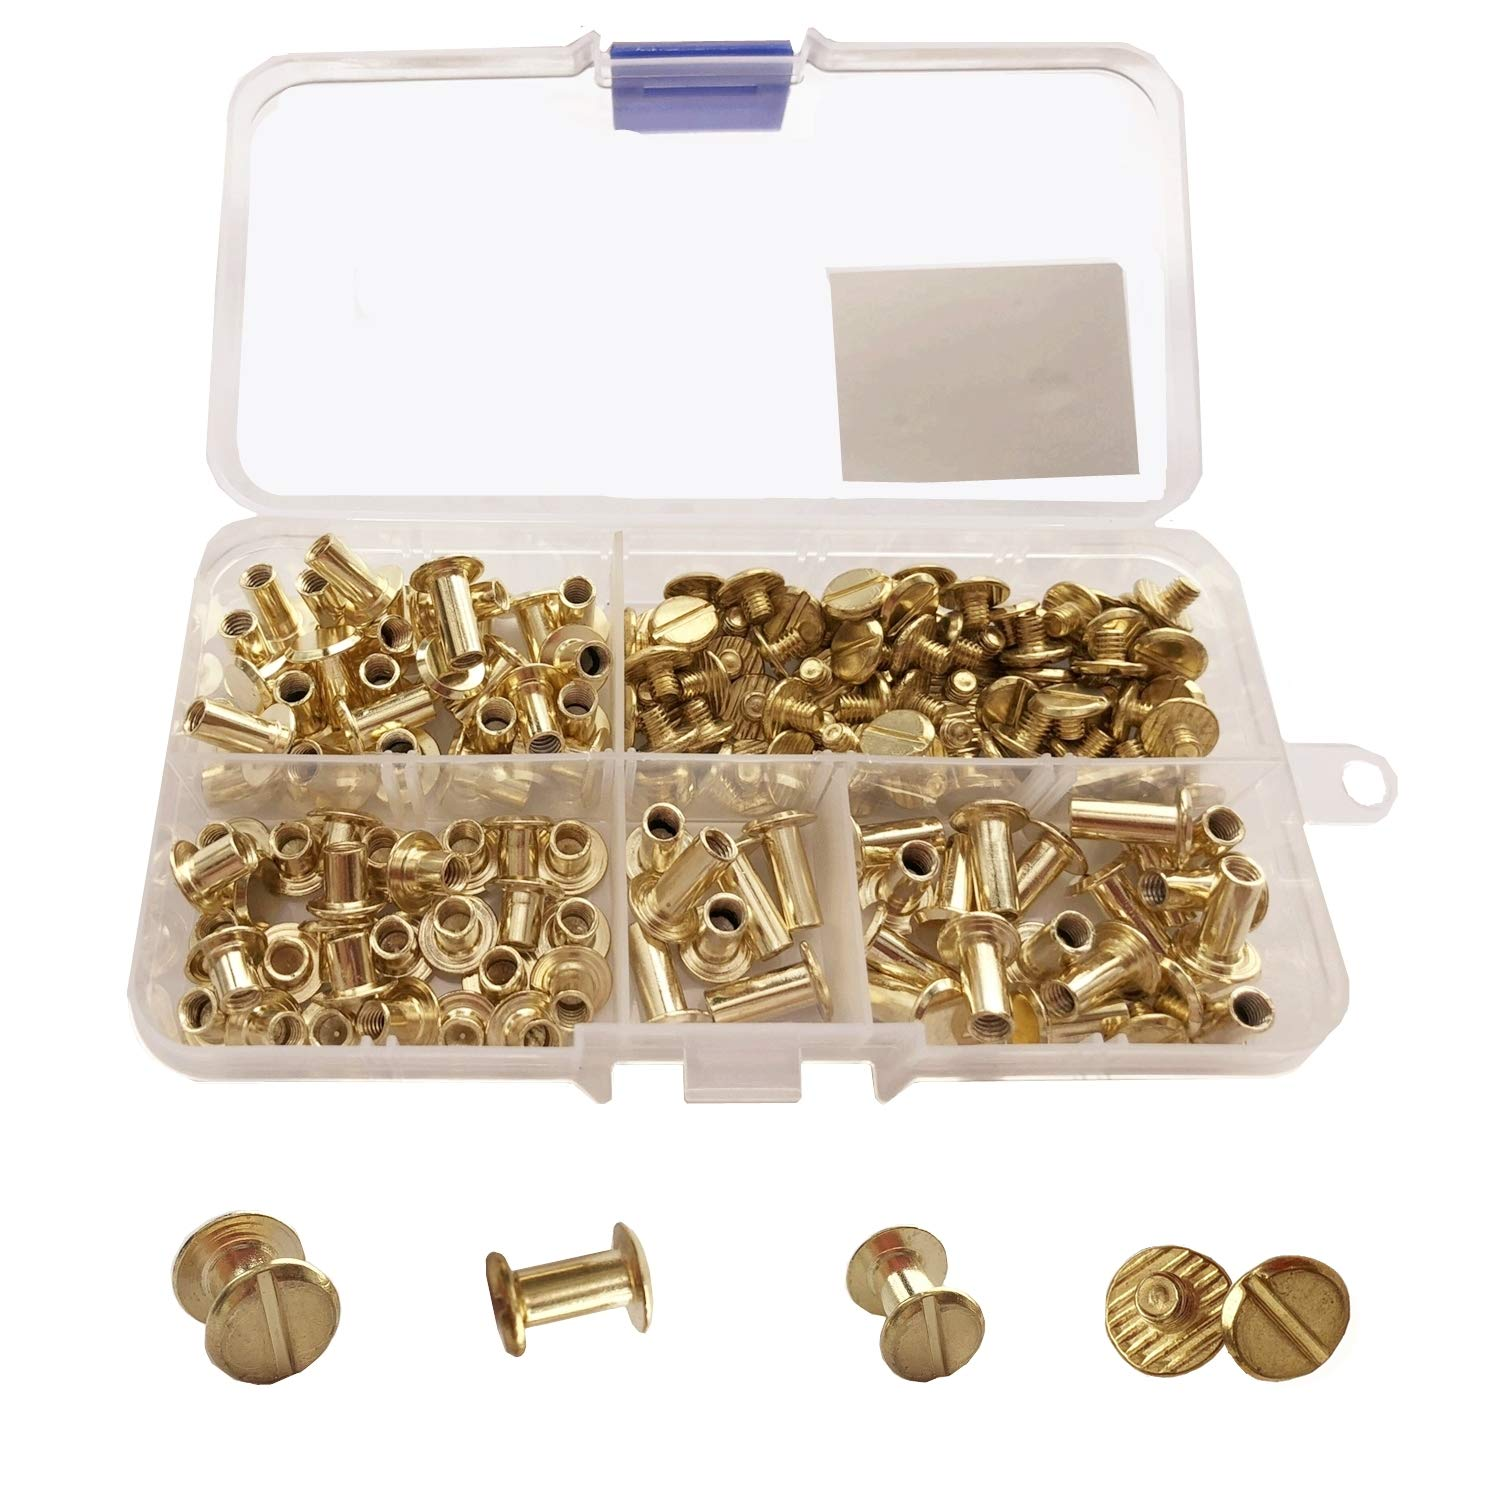 YMAISS 90 Sets Chicago Screws 3 Size 1/4,3/8,1/2in Screw Posts Bookbinding Posts Binding Screw Chicago Button Post Rivets Screw Belt Screws Leather Photo Albums Screw Round Flat Head, Gold Color